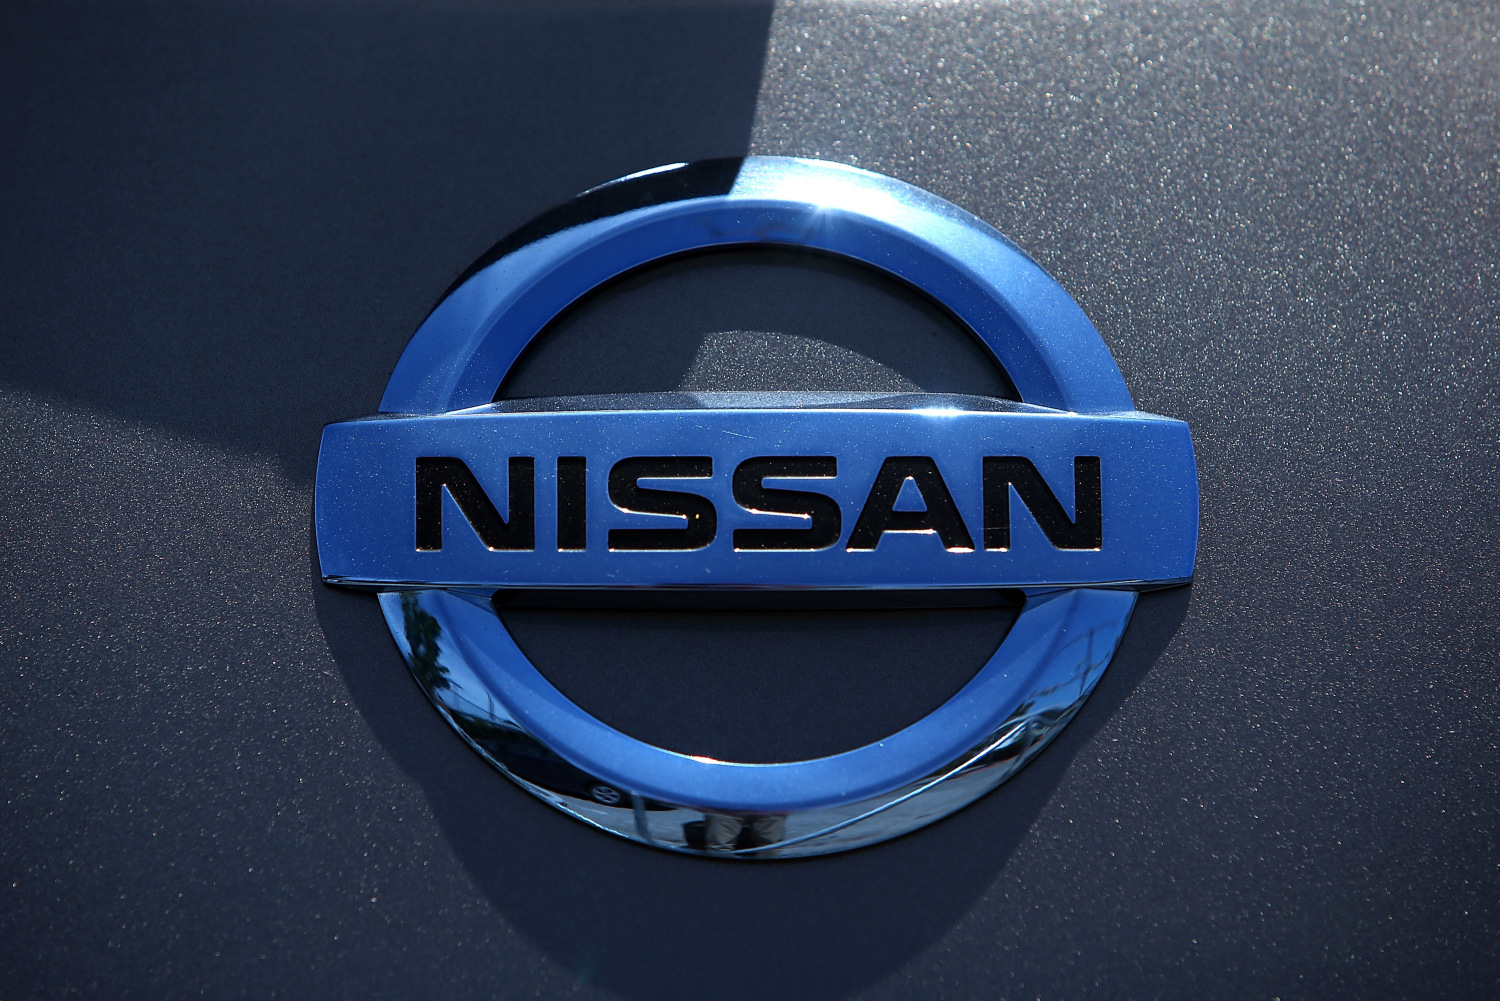 Nissan customer service